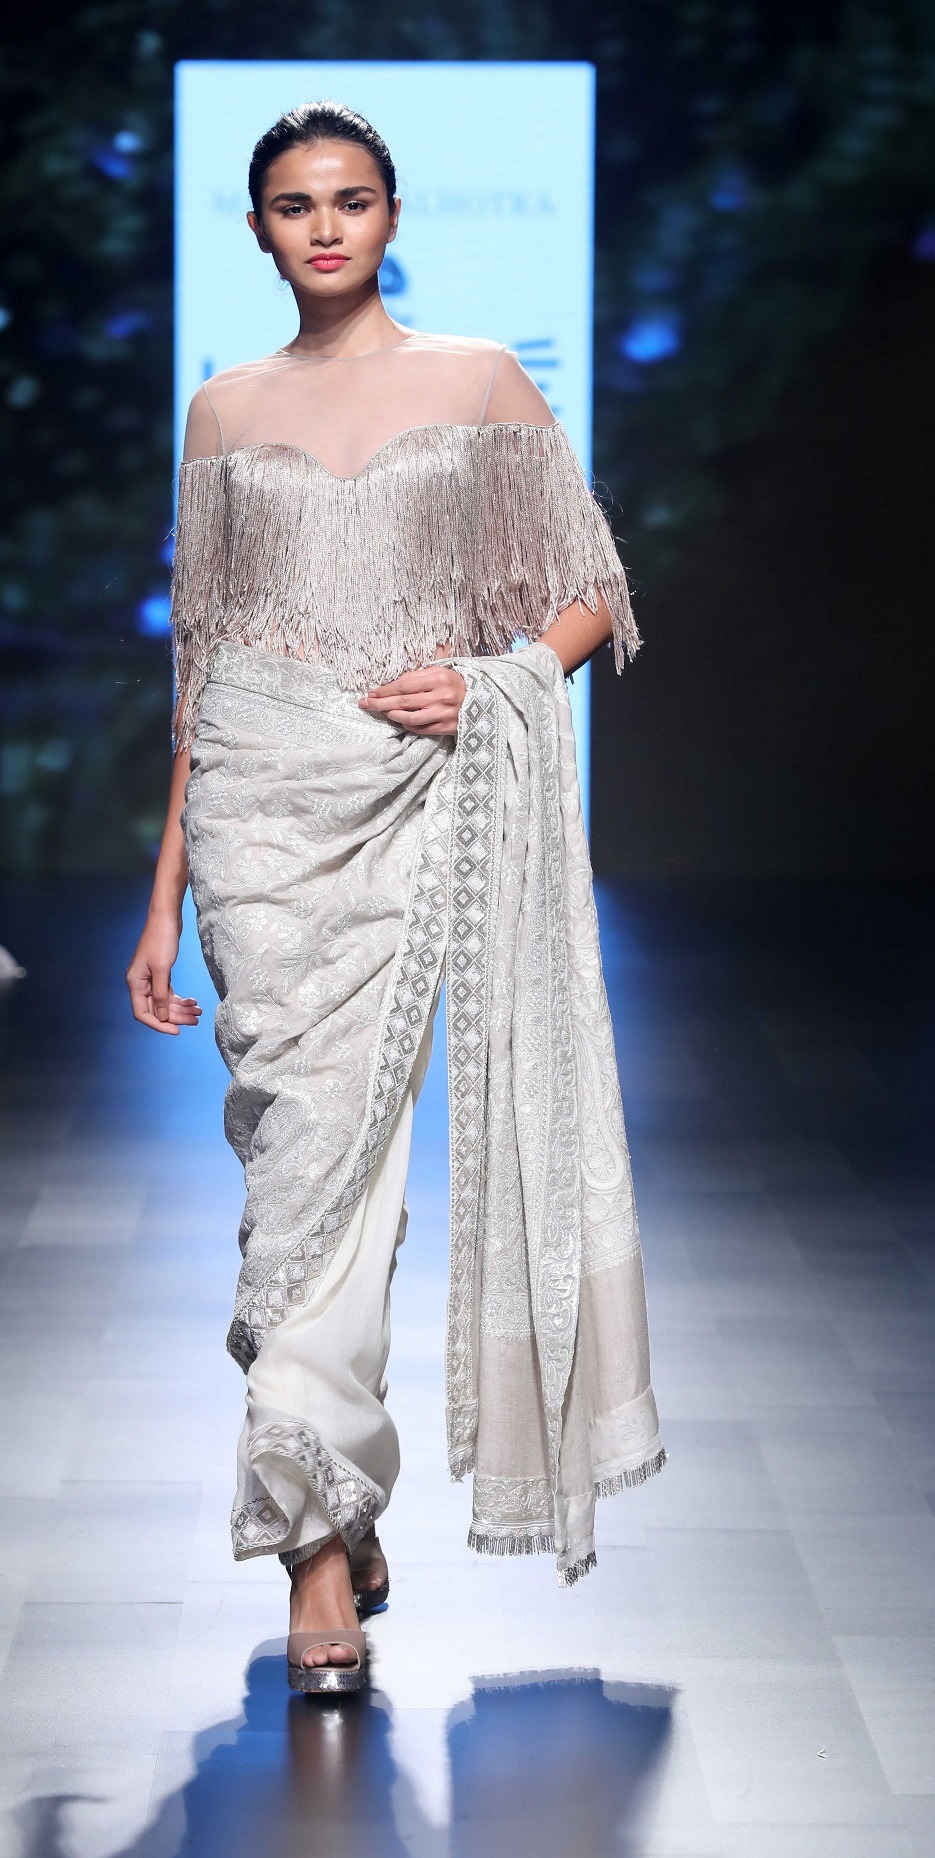 Manish Malhotra unveils Inaya made using Merino wool in collaboration with The Woolmark Company at LFW SR 18 (3)